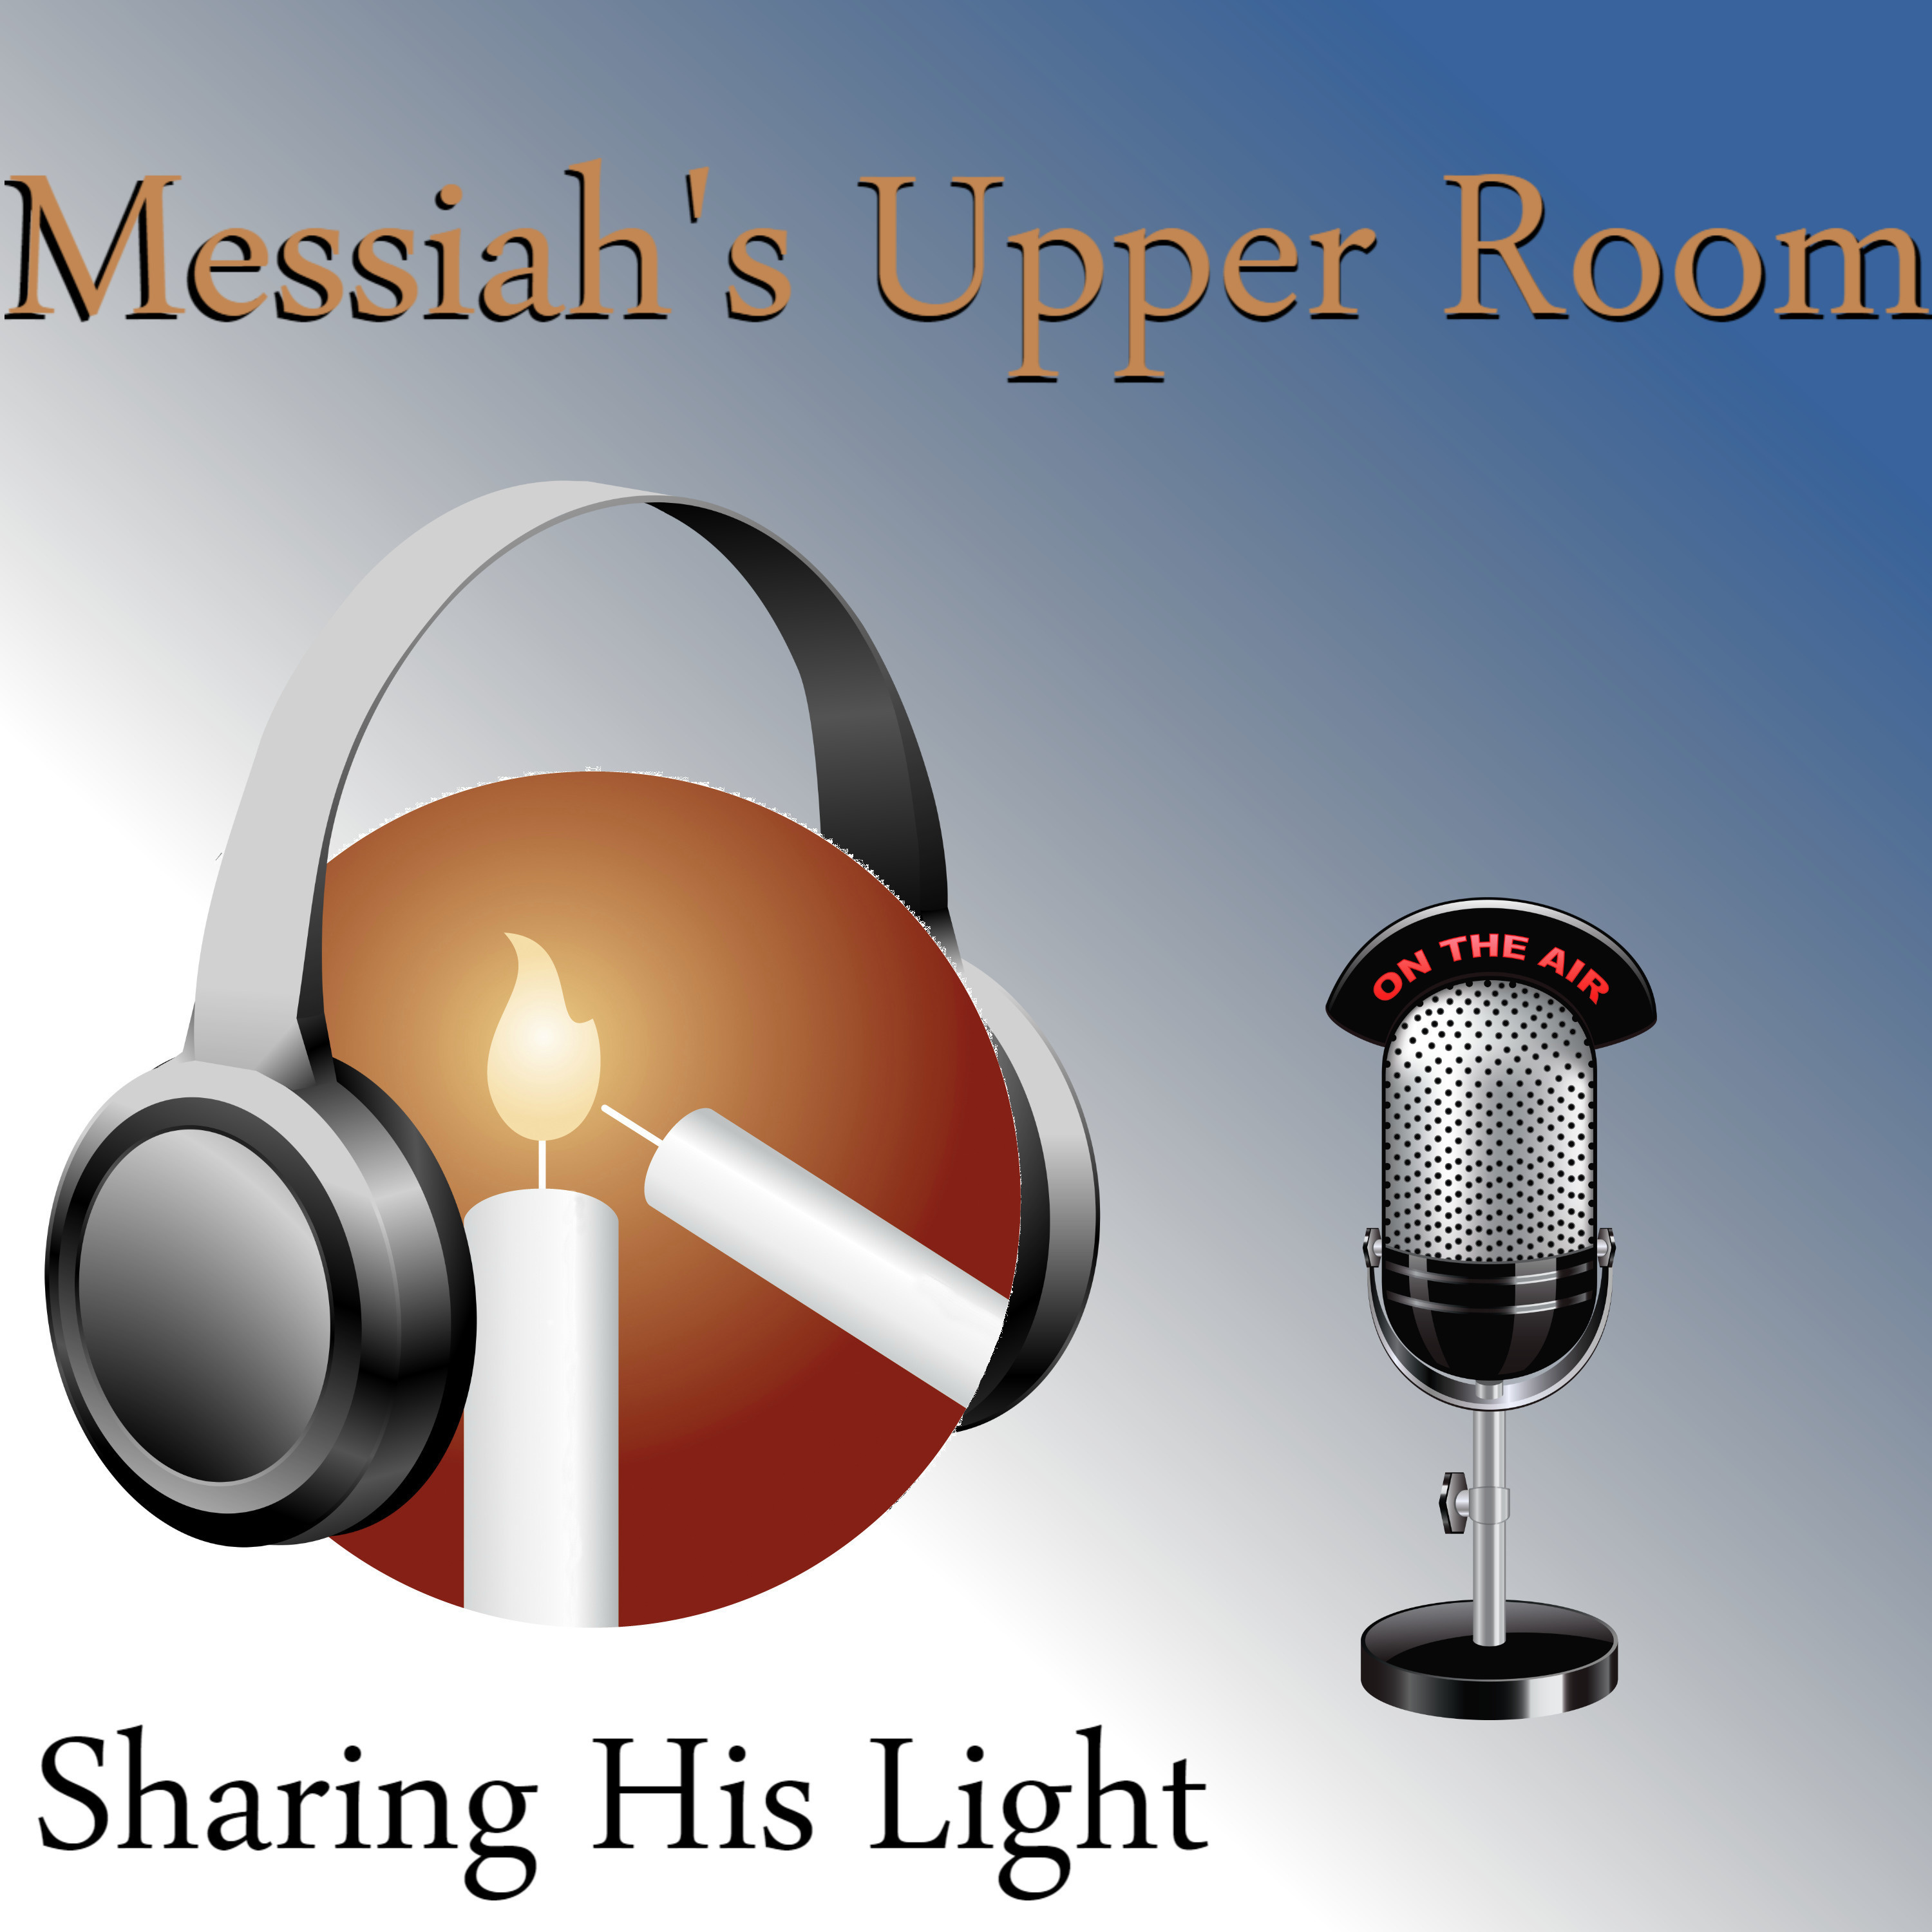 MURP 0049: Christ, The Church And Marriage